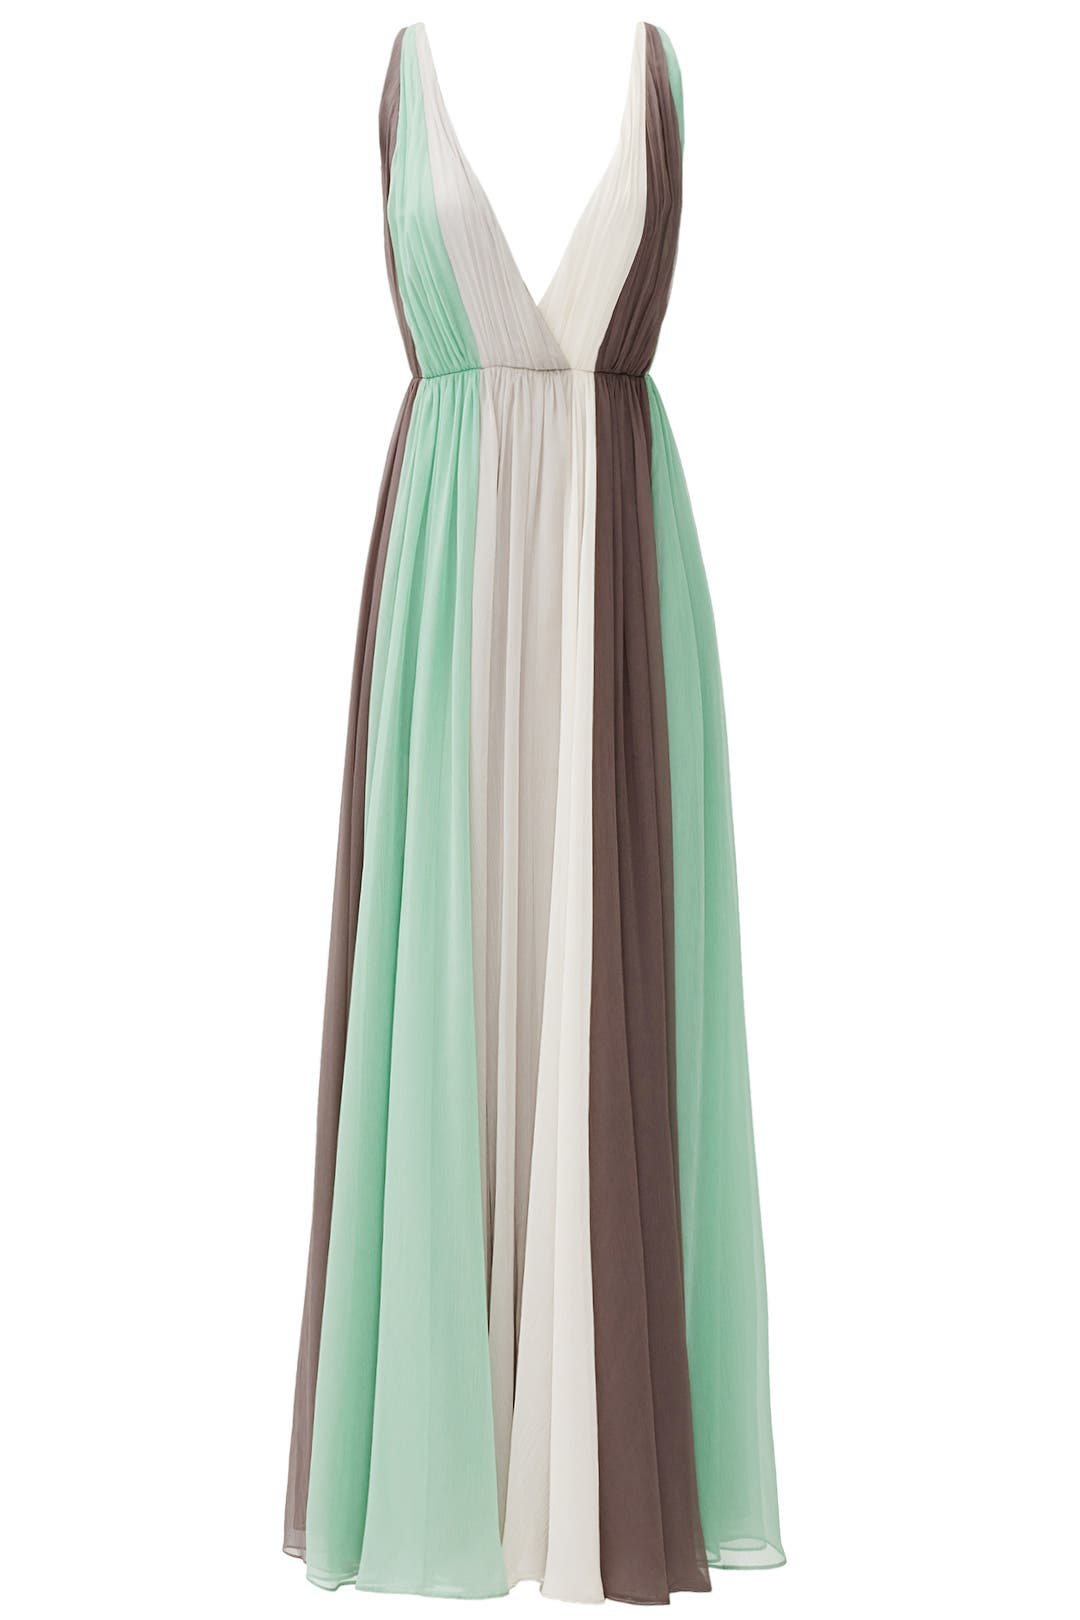 Green Earth Gown by Halston Heritage for $103 | Rent the Runway